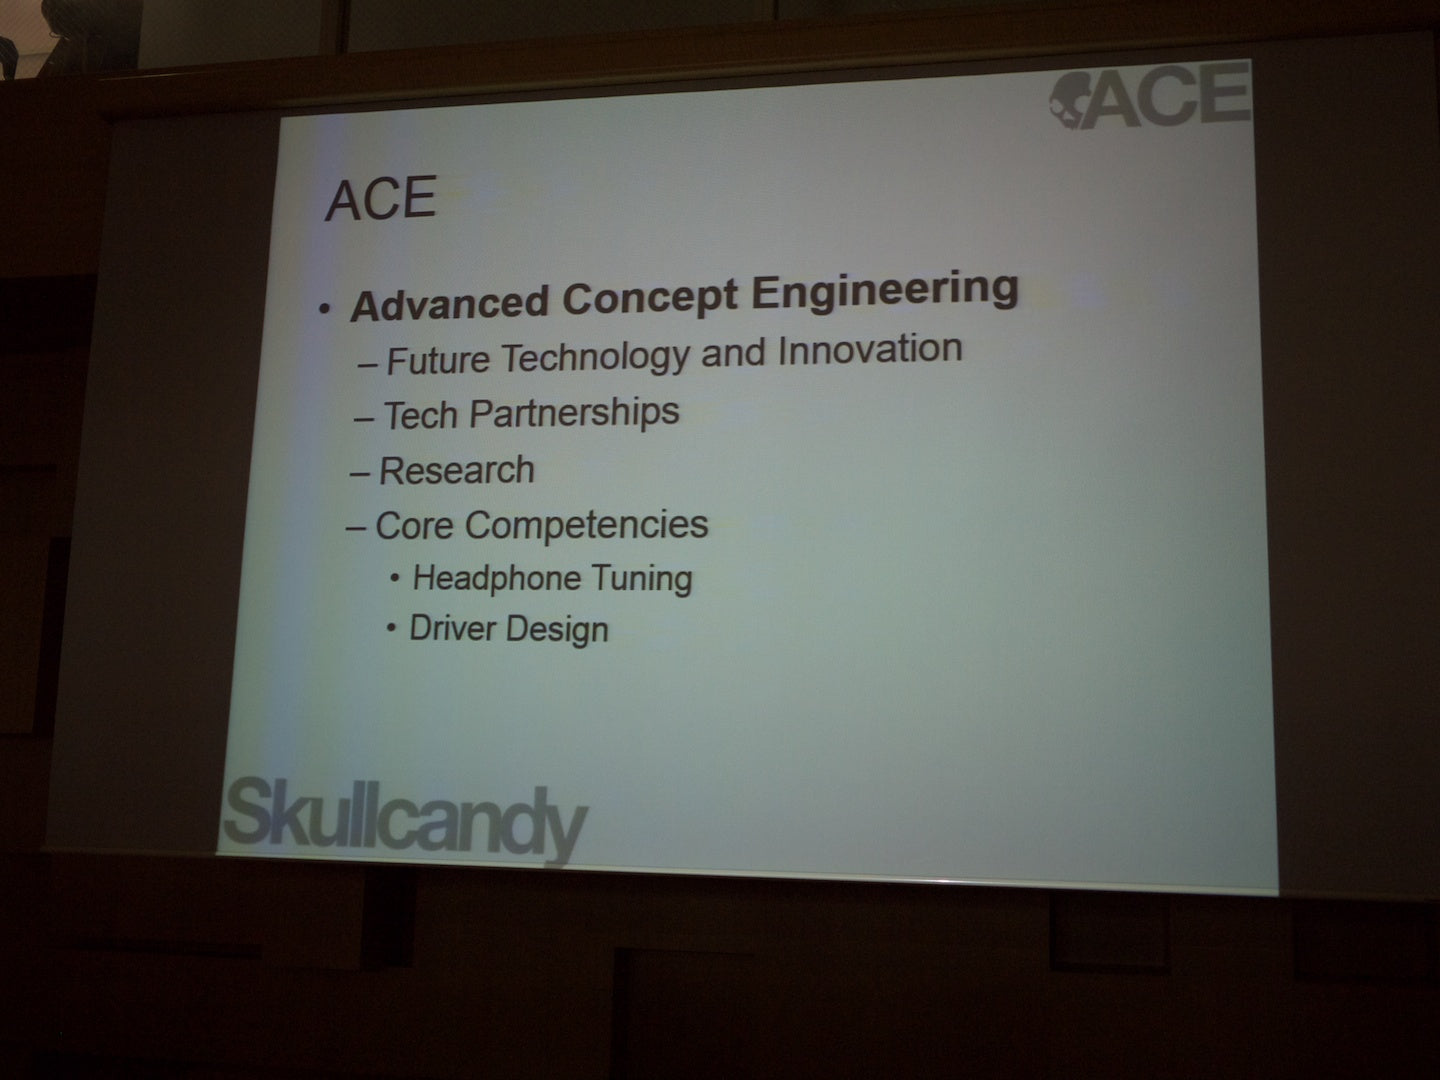 Skullcandy describes ACE - Advanced Concept Engineering